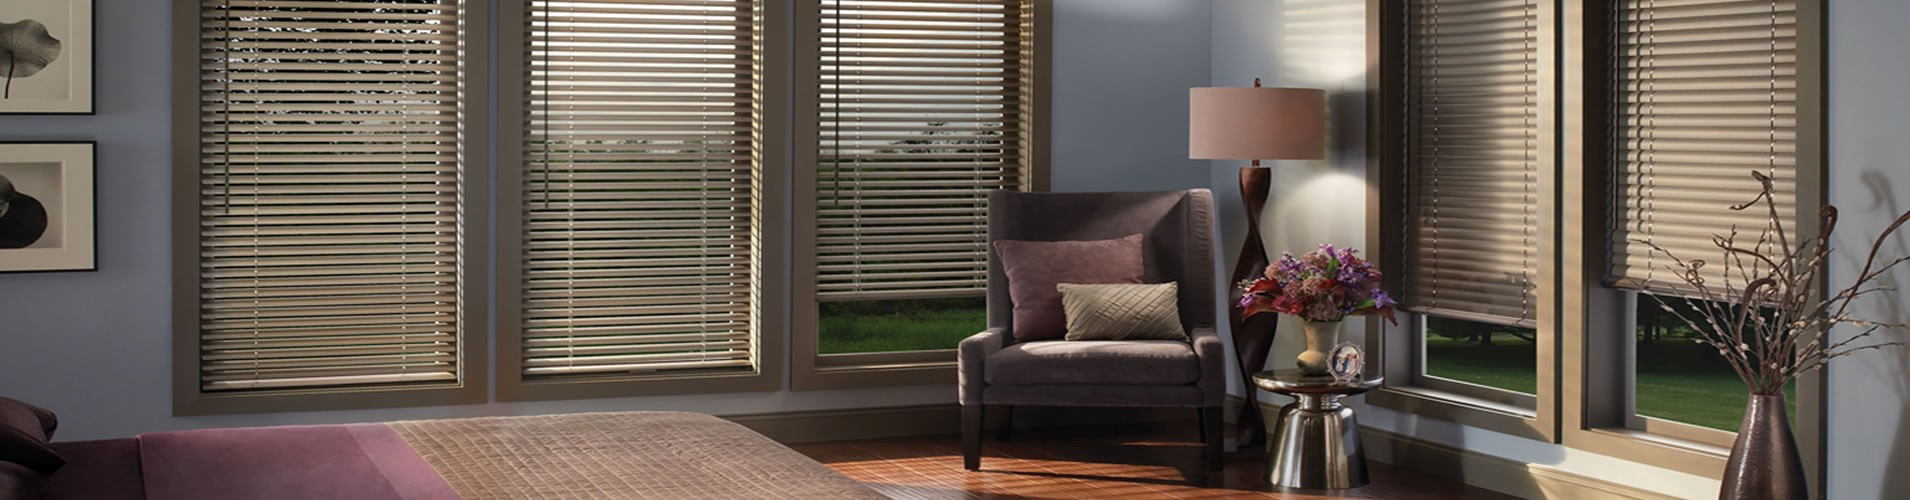 blinds for San Antonio home